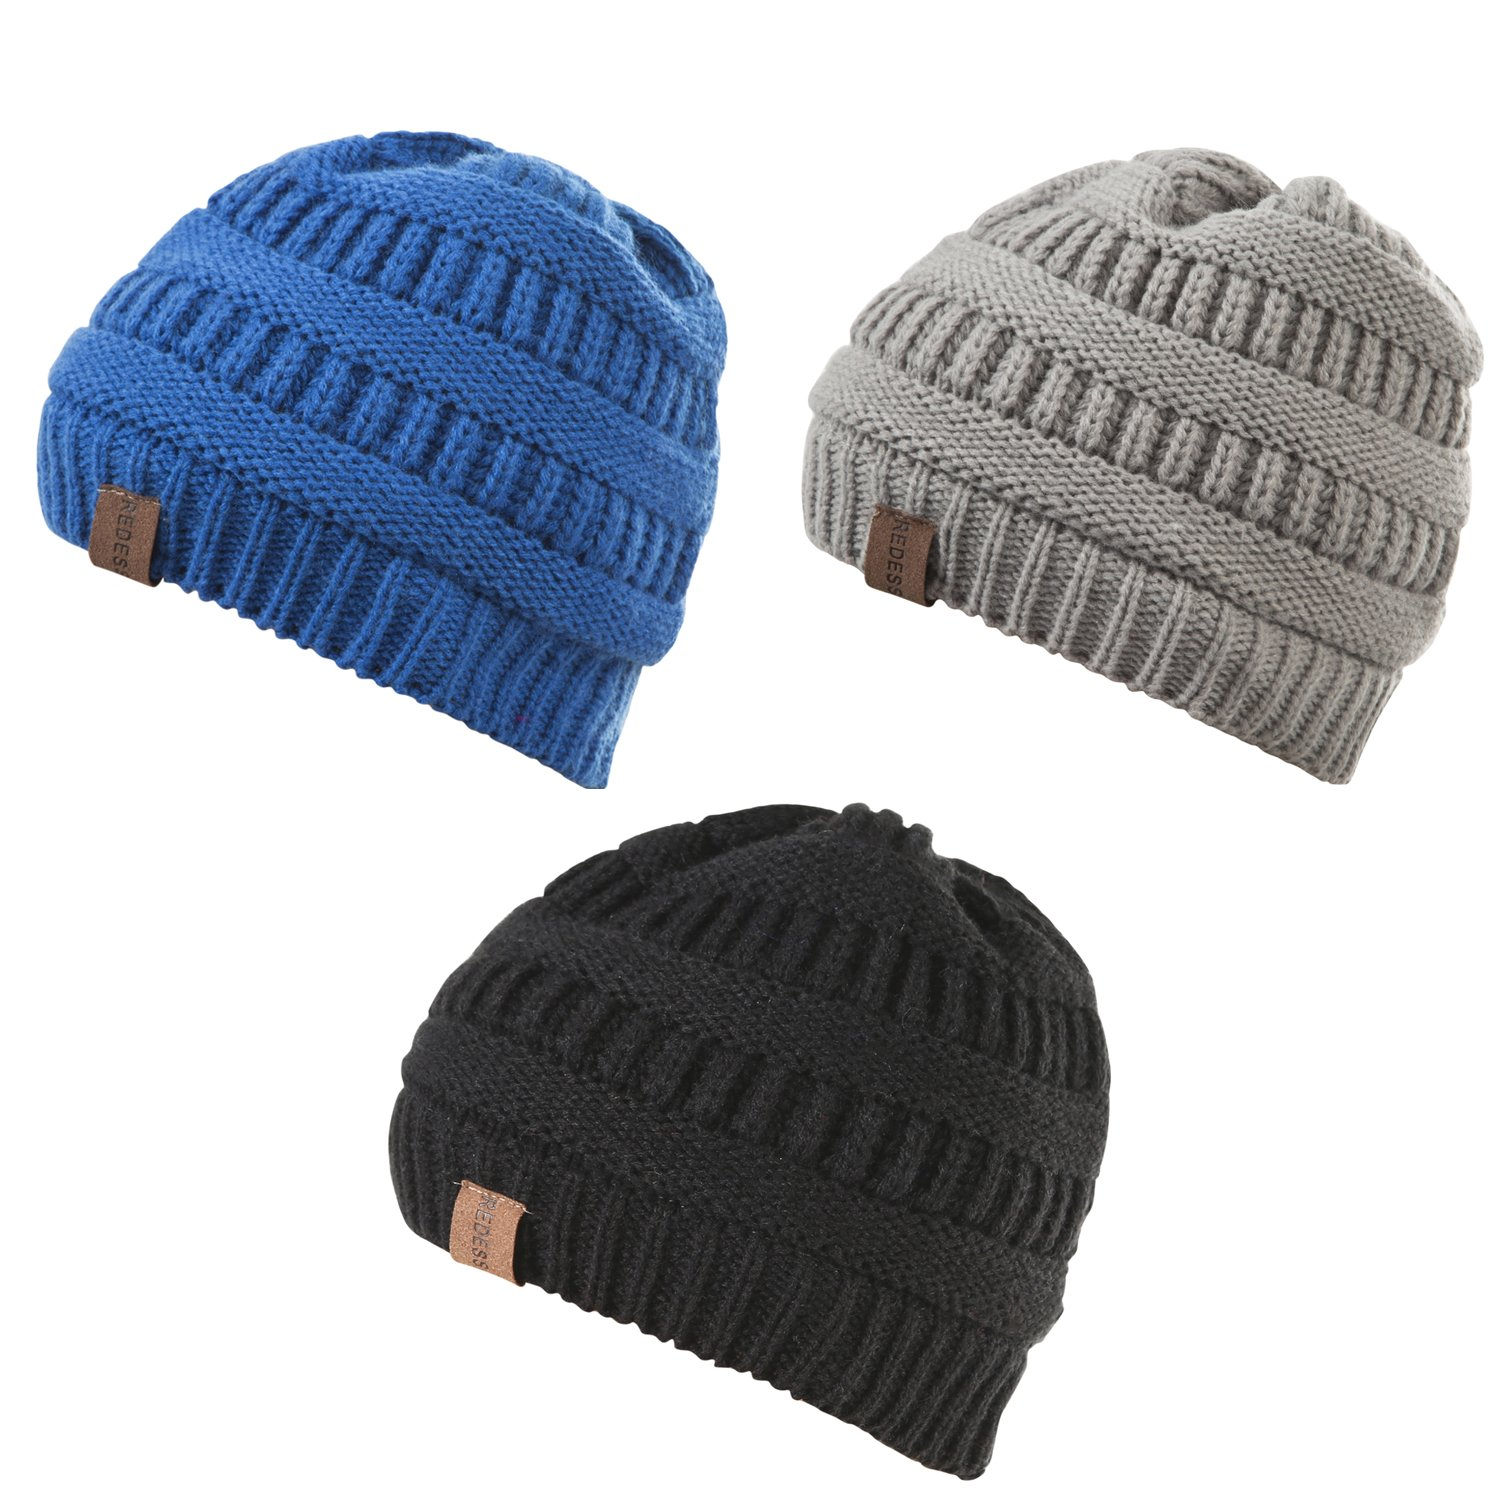 REDESS Baby Boy Winter Warm Fleece Lined Hat, Infant Toddler Kids Beanie Knit Cap for Girls and Boys [0-3years]